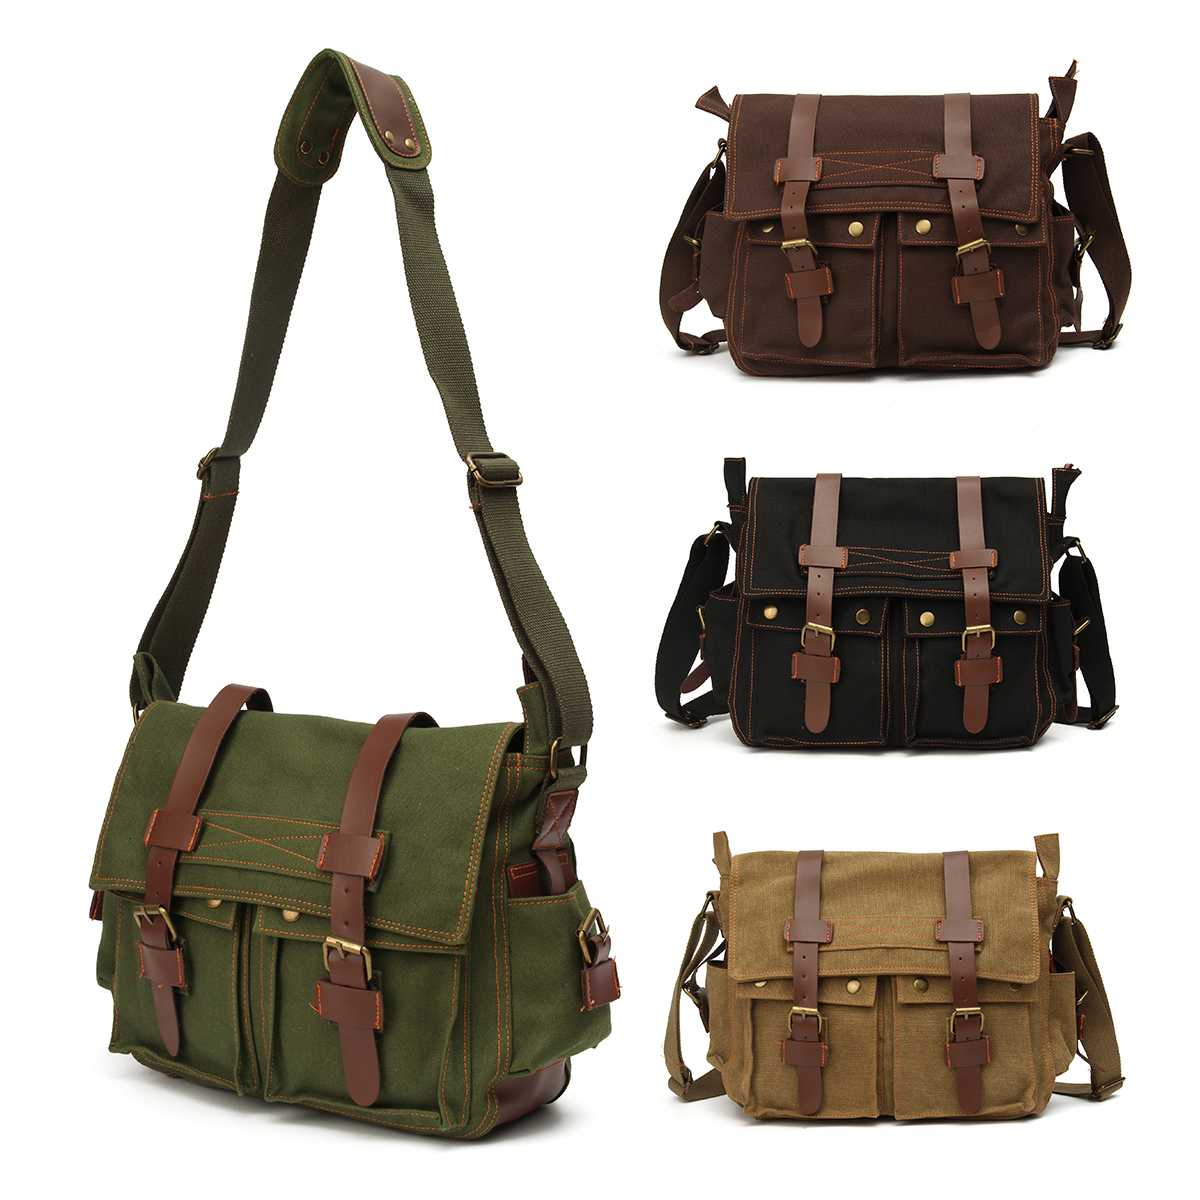 New Men's Vintage Canvas Leather Military Large Shoulder Messenger Bag Sport Bag Outdoor Bags